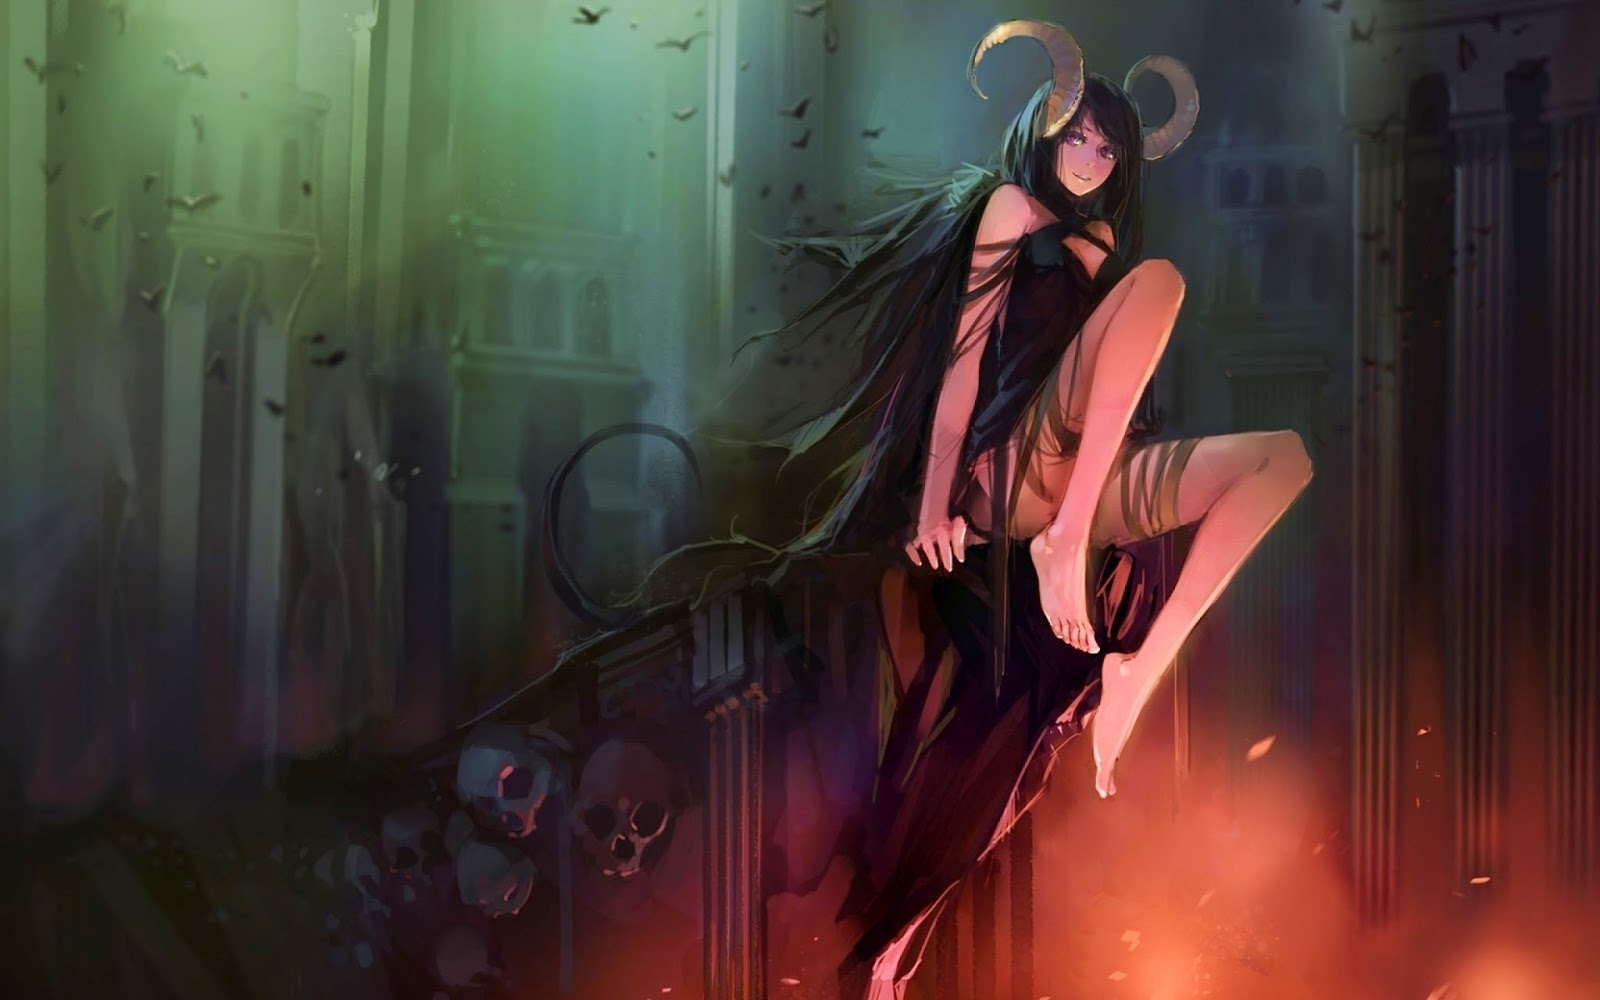 3d monster succubus adult photo